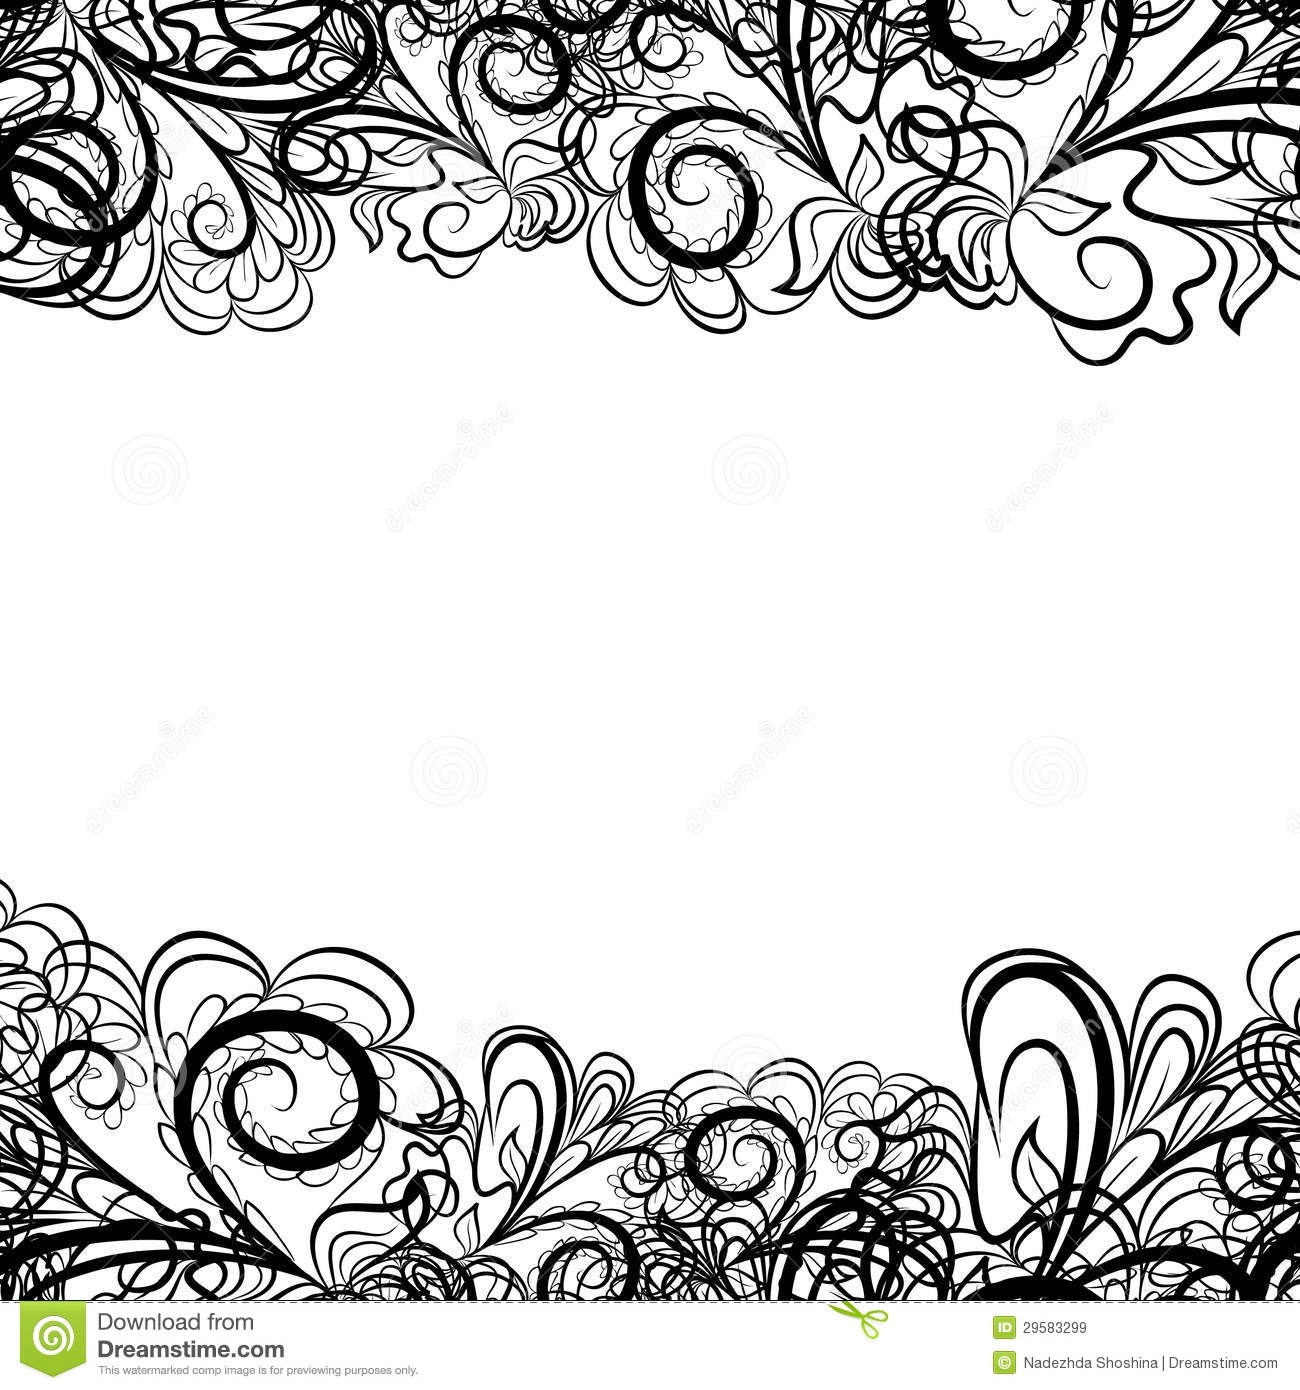 White Lace Border Clipartblack Lace Bord-White Lace Border Clipartblack Lace Border Royalty Free Stock Images-9